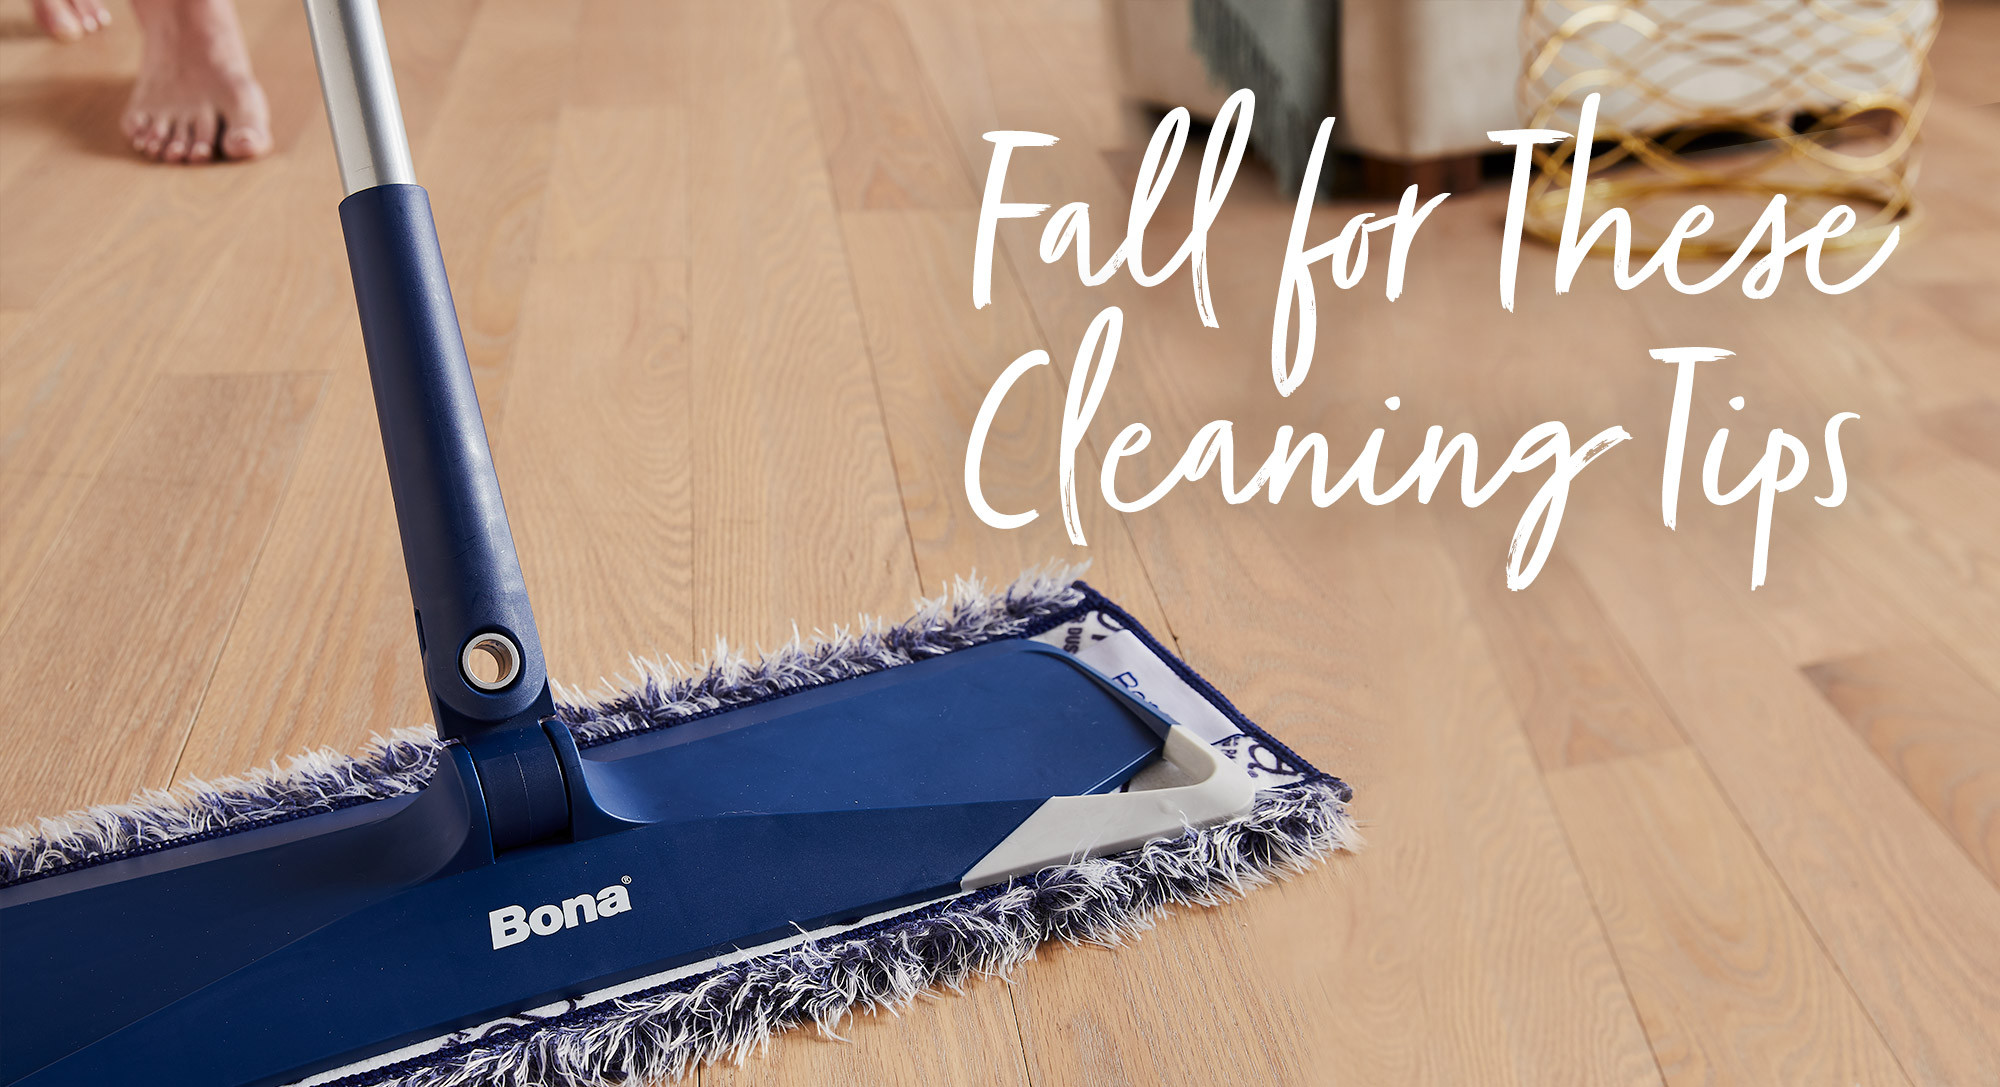 hardwood floor cleaning pads of home bona us within fall feature2